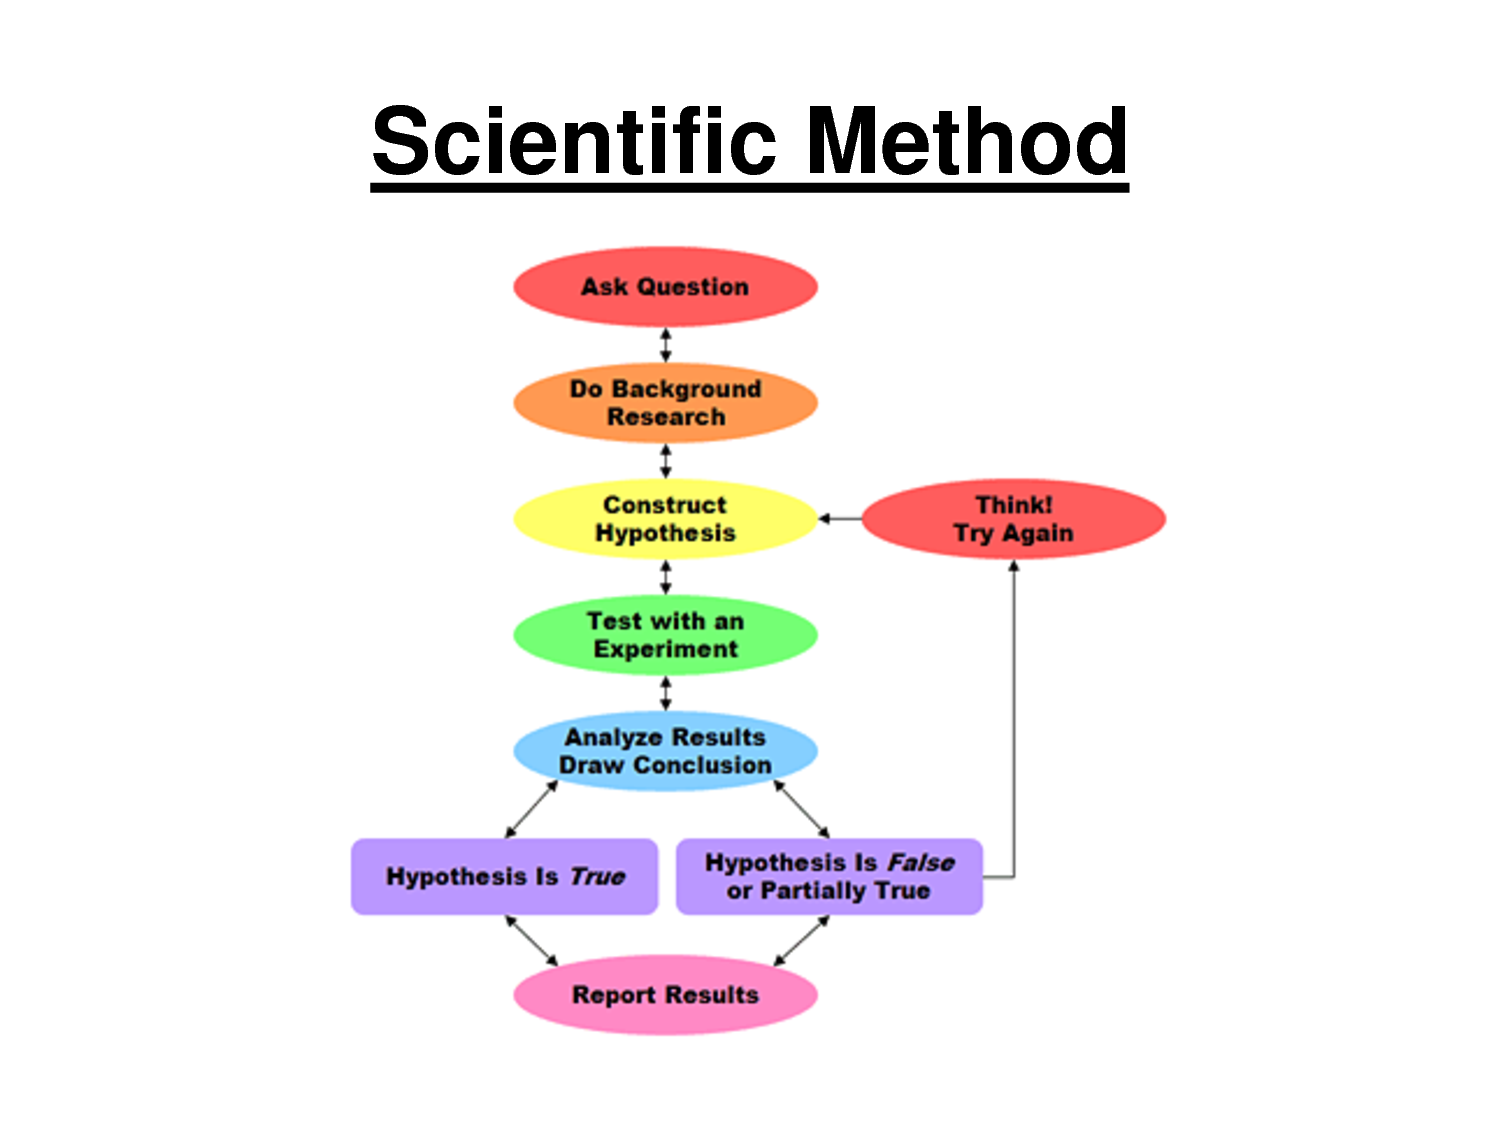 Scientific Method Francis Bacon's method began a